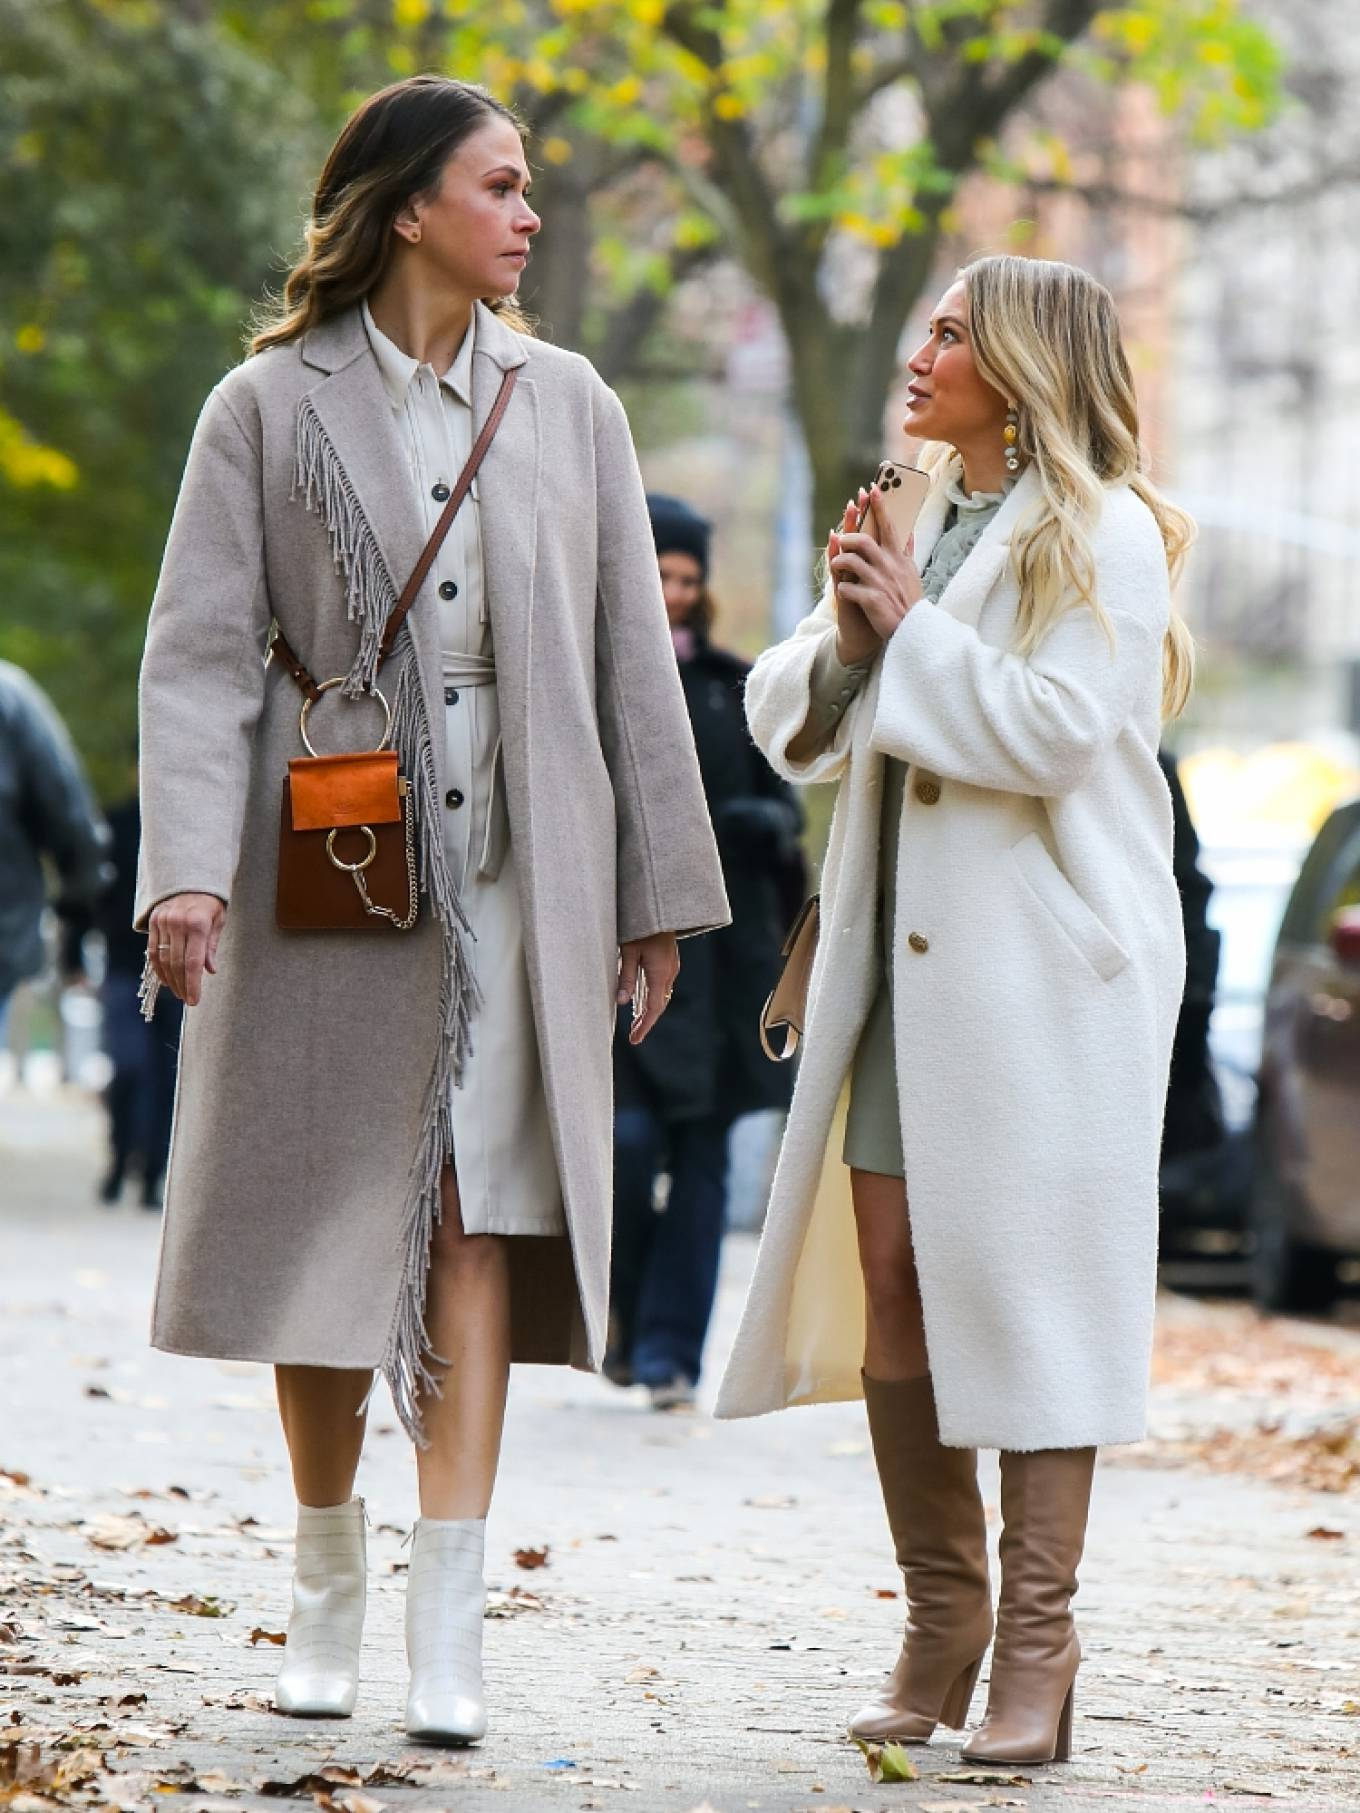 Hilary Duff - With Sutton Foster At the film set of the 'Younger' TV Series in New York